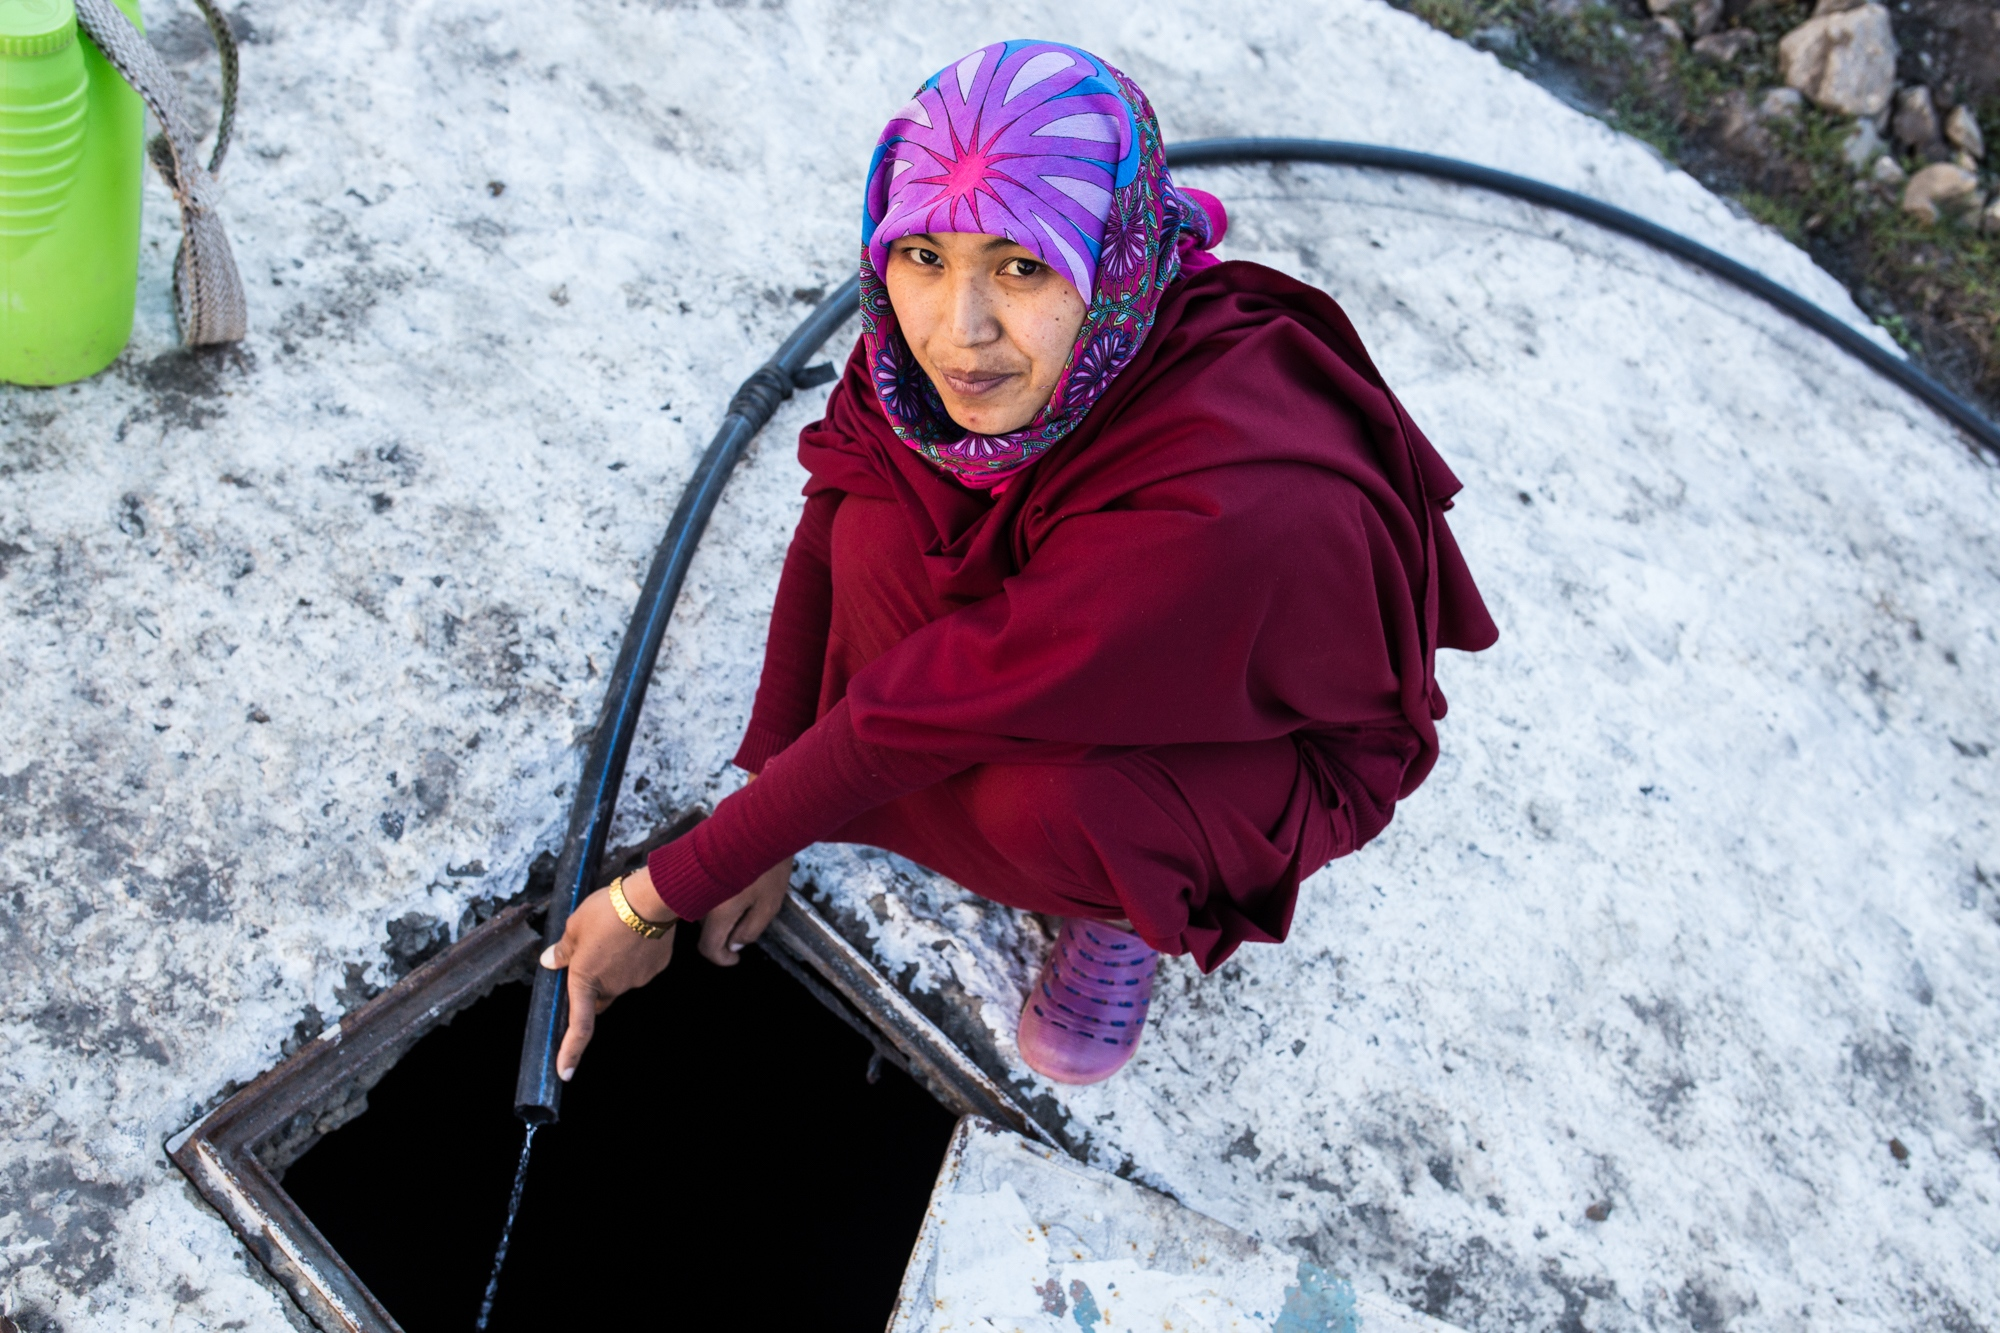 A Buddhist Nun in India's Spiti Valley inspects a trickle of water from their dying spring nearby the Nunnery. They now have to walk to the next village to retrieve water where they mentioned communities are now arguing about water allocation.